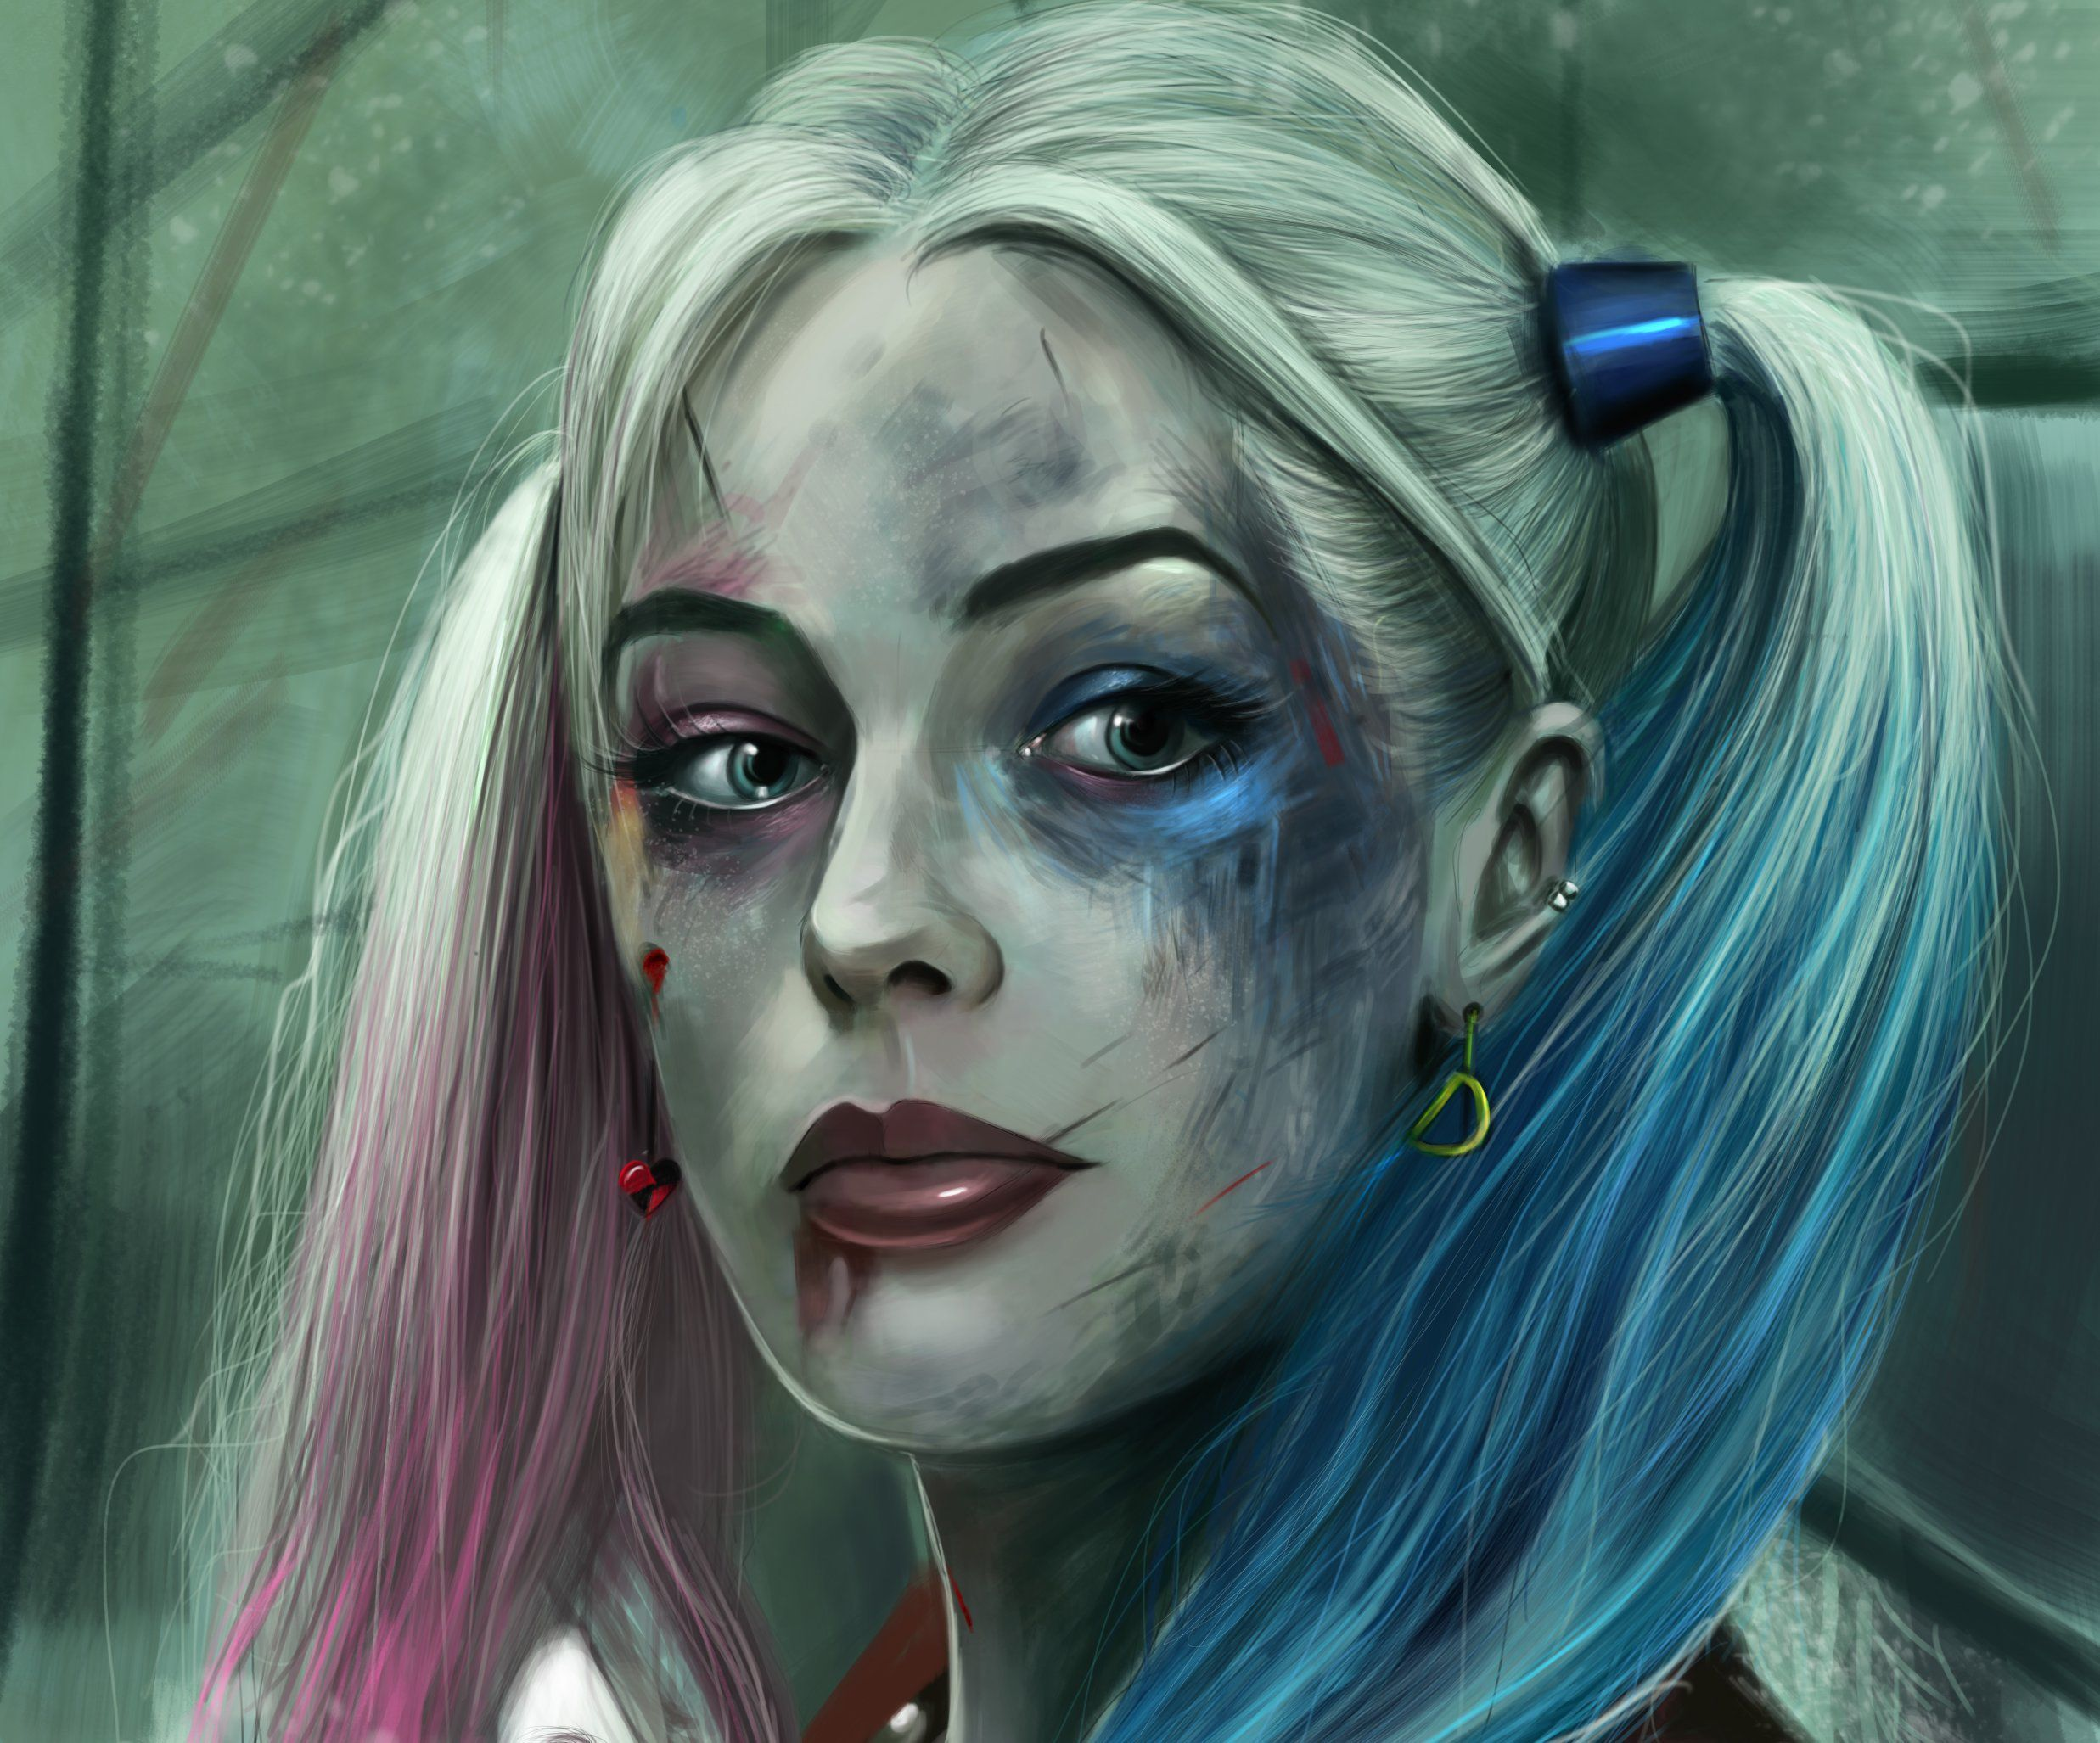 Harley quinn wallpapers backgrounds for Immagini joker hd